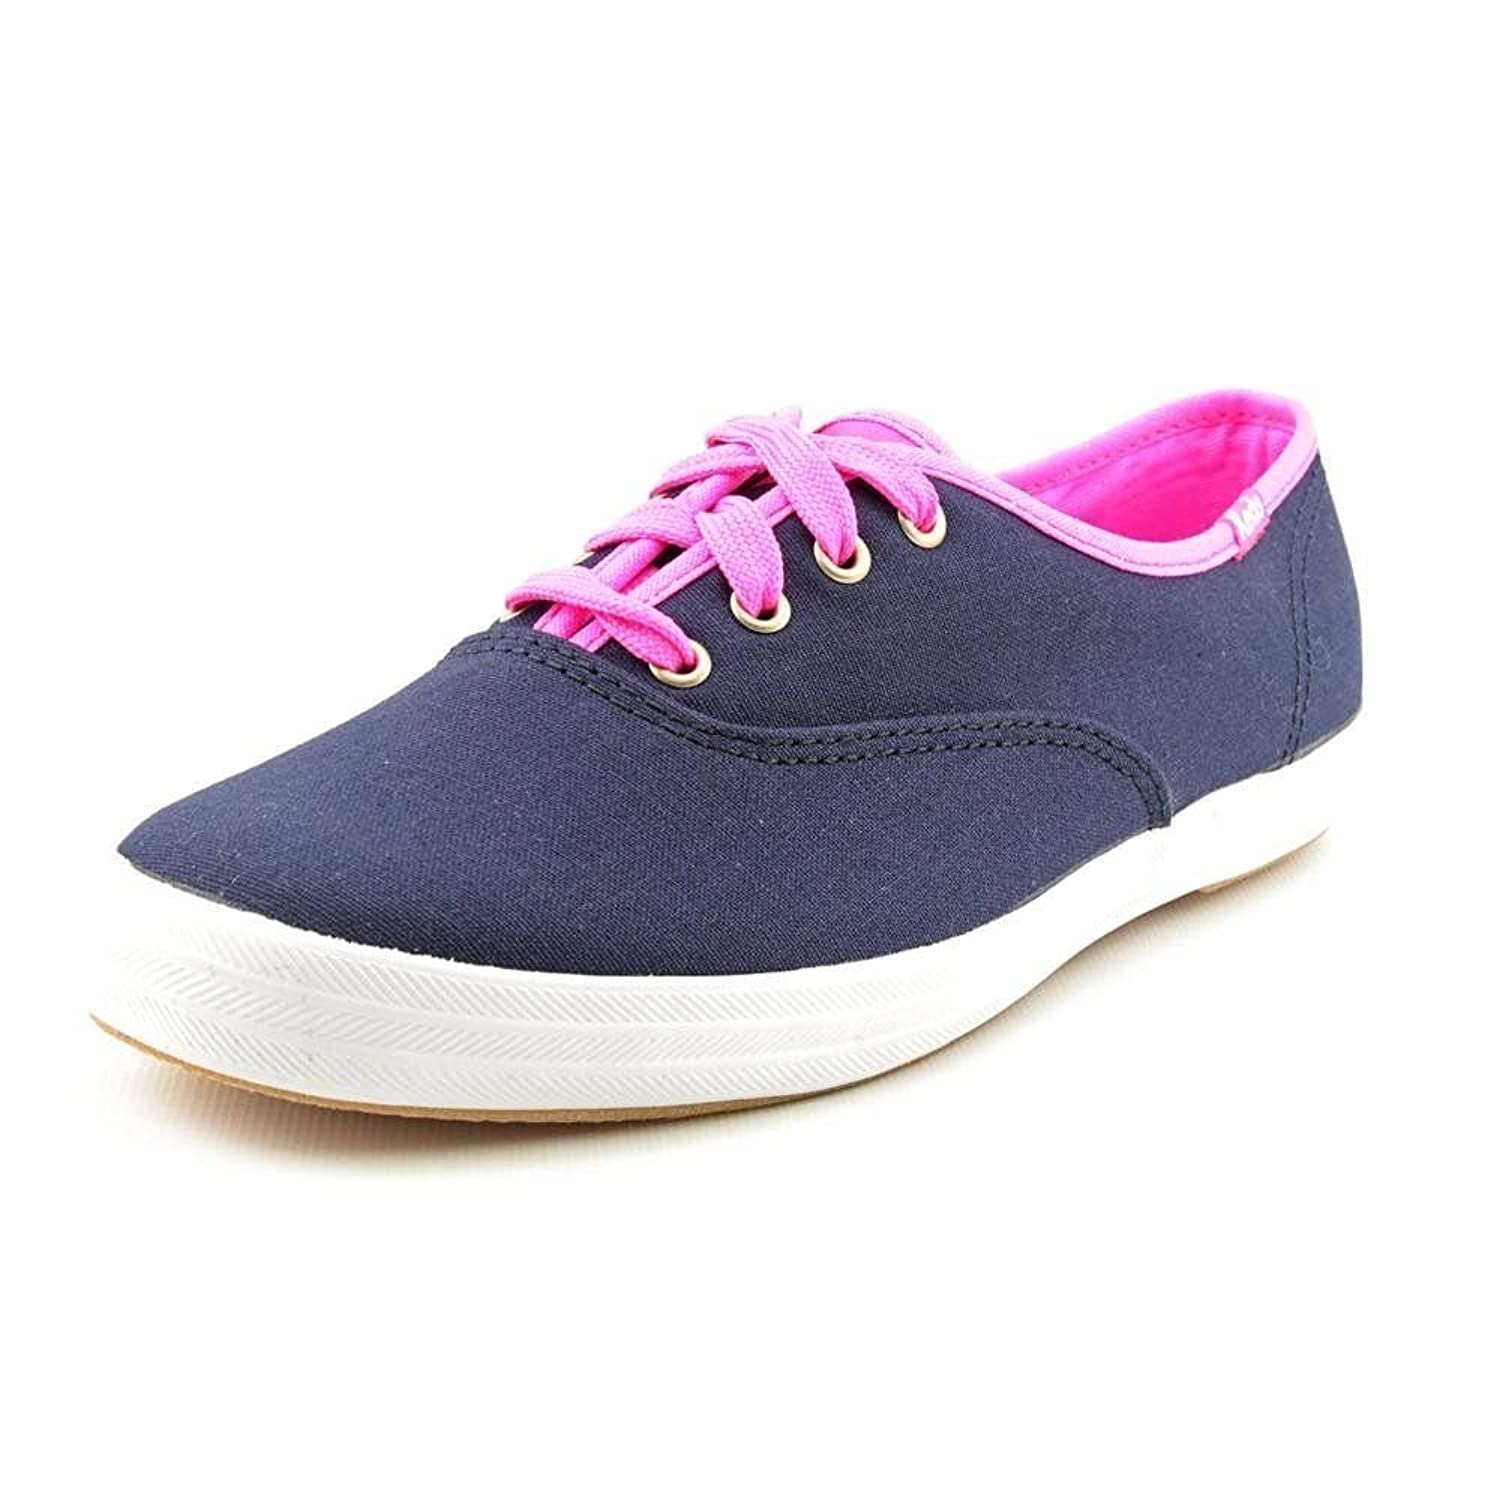 Keds Women's Ch CVO Fashion Sneakers in Navy / Neon Pink Size 9m